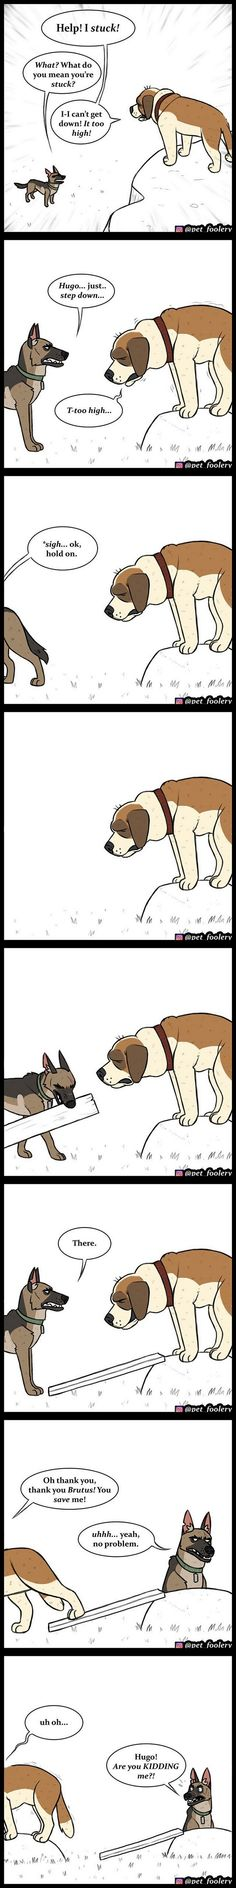 Pixie & Brutus 43 - Types of Comics Funny Animal Comics, Animal Jokes, Funny Animal Memes, Cute Funny Animals, Funny Relatable Memes, Funny Animal Pictures, Funny Comics, Cat Comics, Hilarious Memes